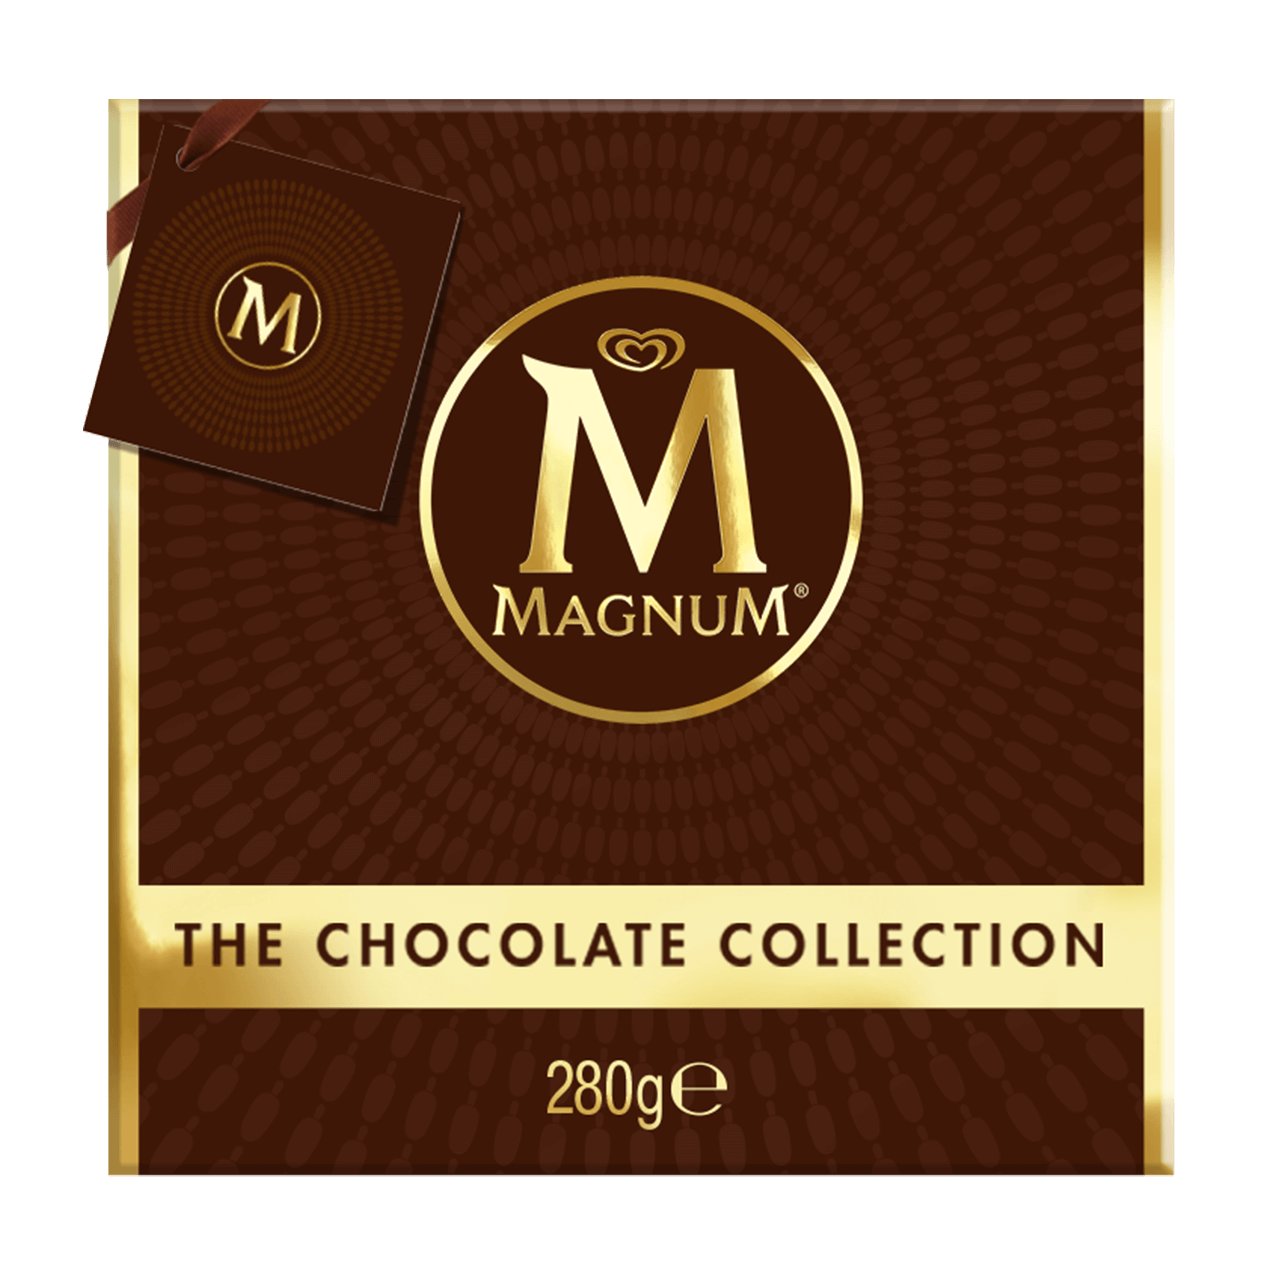 Magnum Logo - The Chocolate Collection | Our Products | Magnum UK